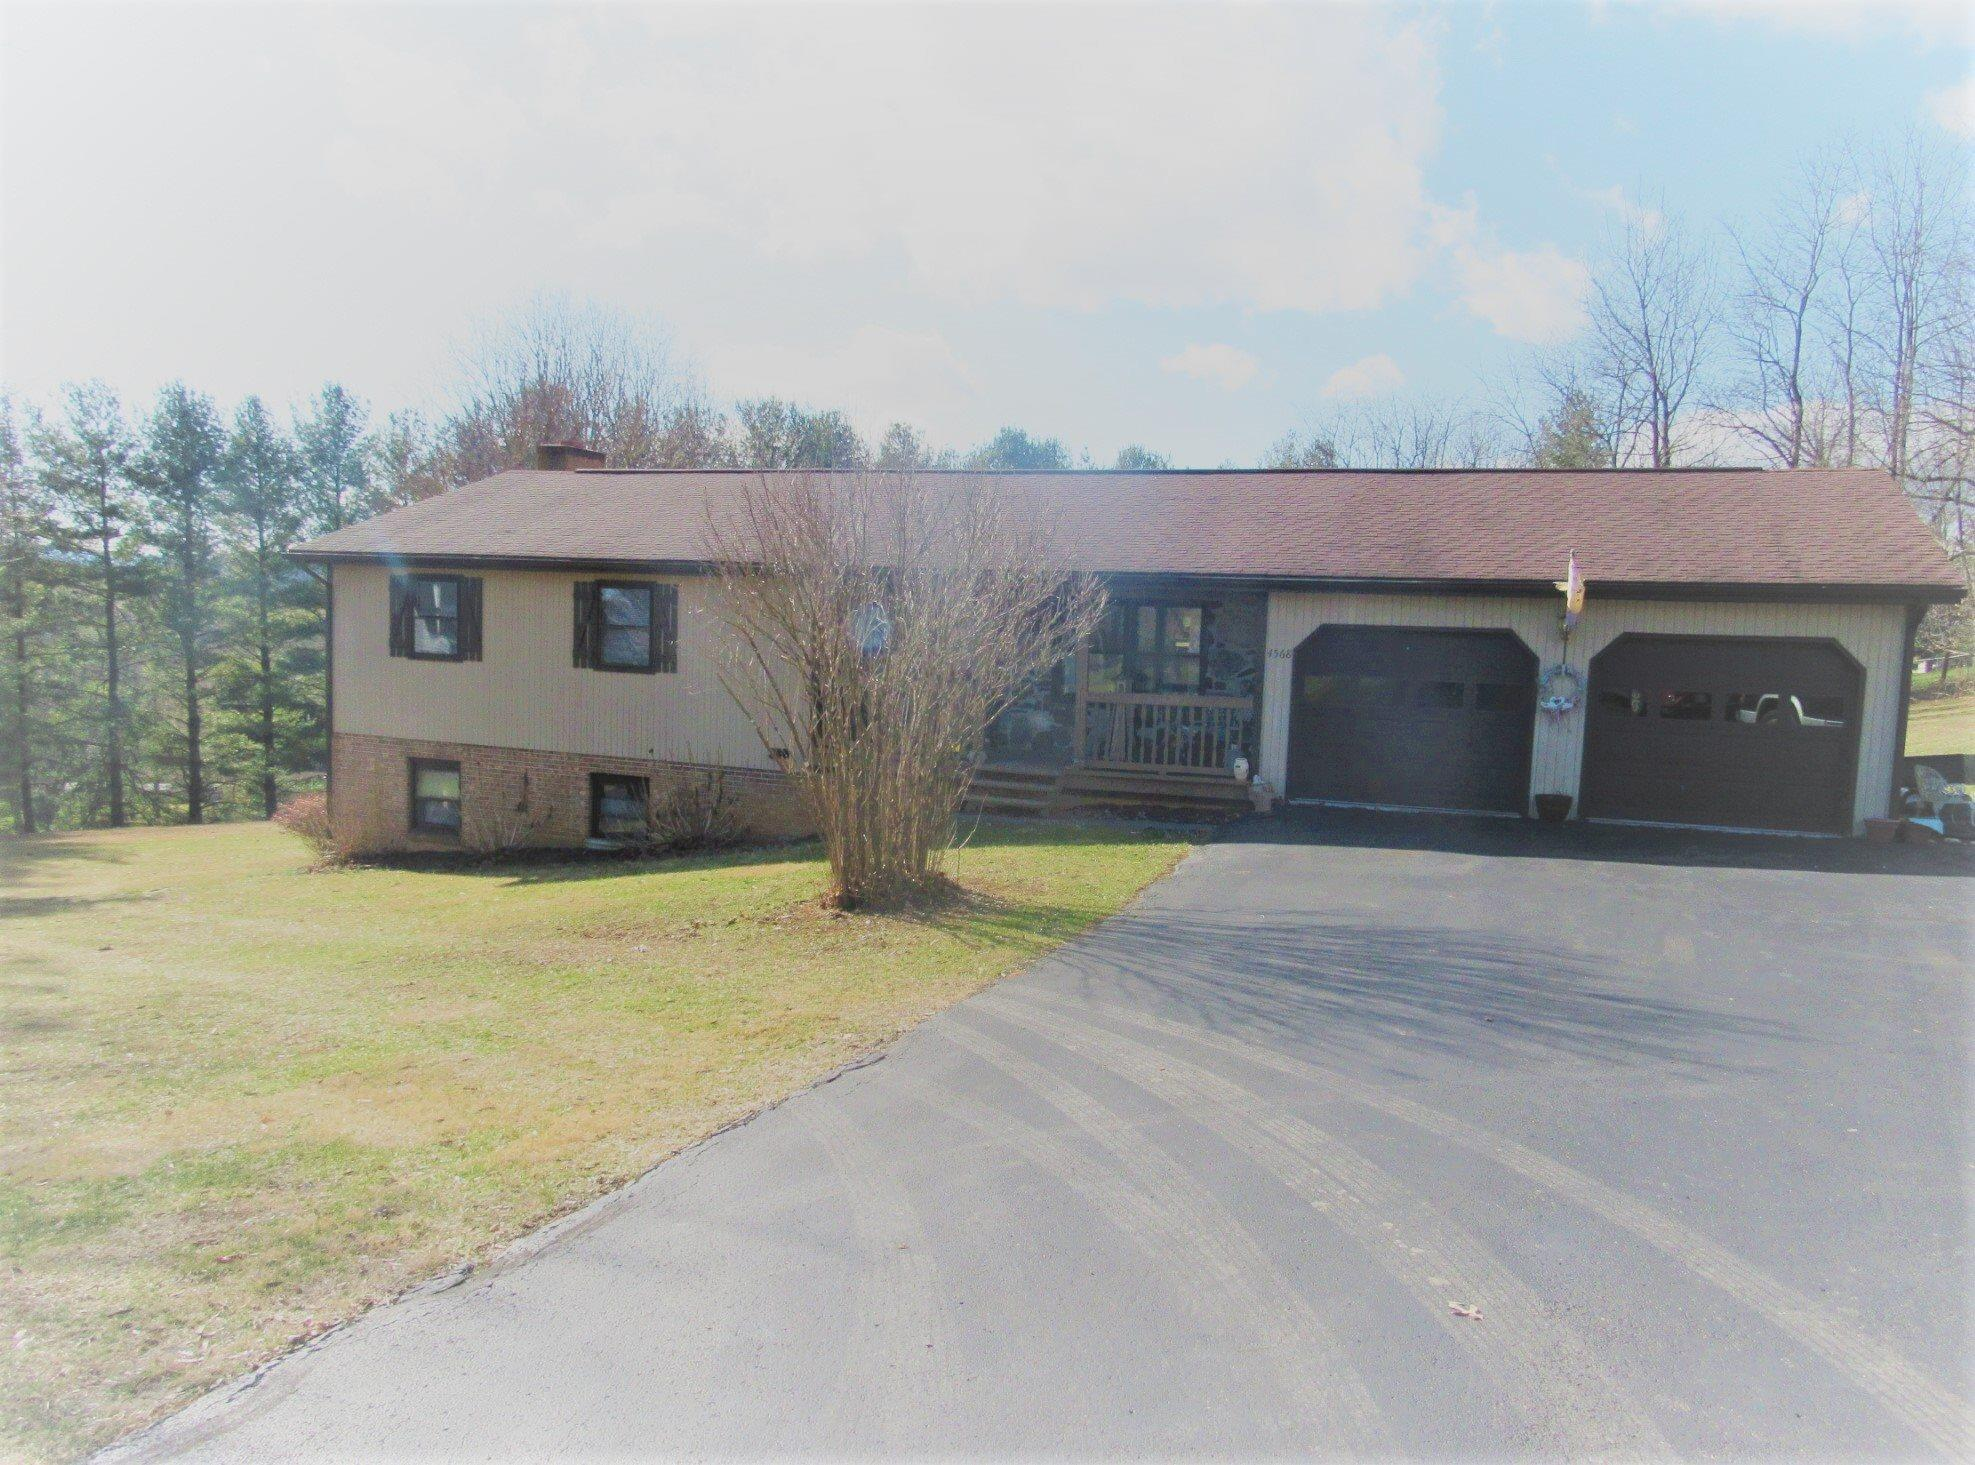 Beautifully Updated Large Brick Ranch home on nearly 2 Acre lot in the coveted Mountain View Subdivision! This home boasts 5 bedrooms and 3 baths, eat-in kitchen,formal dining/living room, full finished walk-out basement-rec room with tons of storage,den with stone fireplace amazing sunroom facing the mountains that is attached to large wood deck with built-in pergola over-looking this beautiful property! Home offers hardwood flooring, updated kitchen with stainless steel appliances and ceramic tile backsplash, updated bath with ceramic tile backsplash and ceramic tile flooring, brand new hot water heater, heat pump, skylight, wood-burning fireplace, covered patio with HUGE storage building, and 2 car attached garage with overhead attic storage. Definitely a MUST SEE!